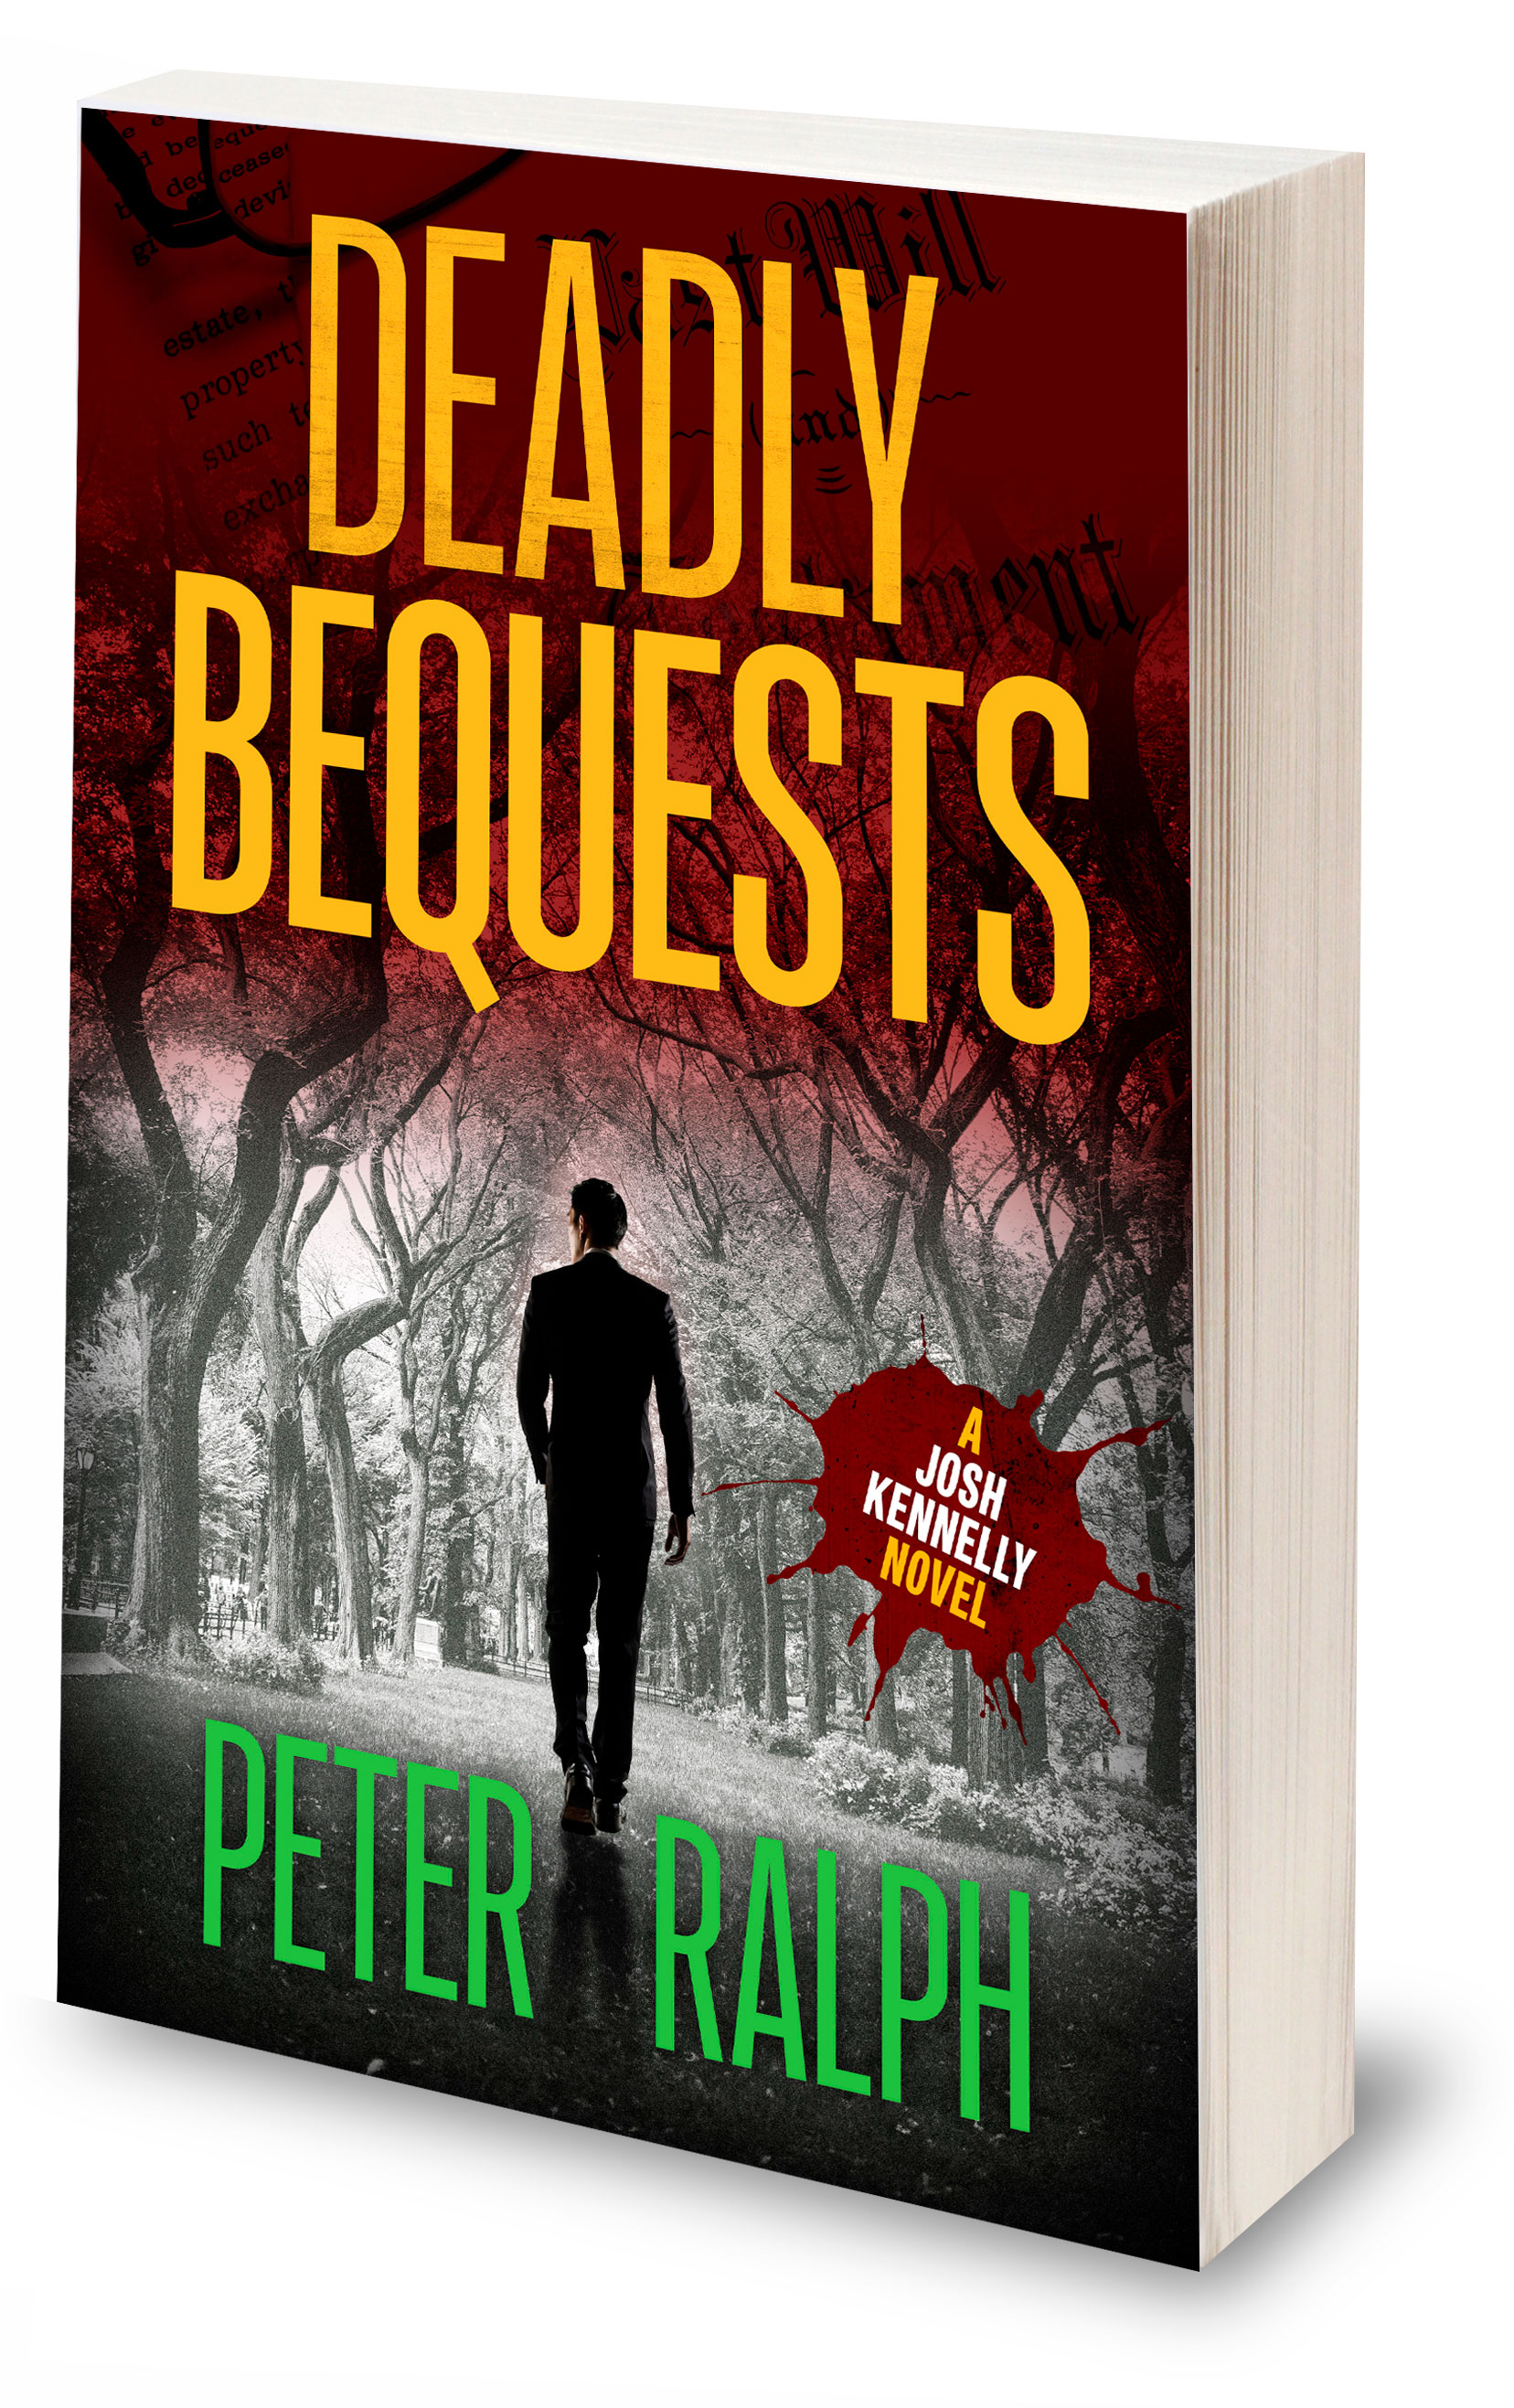 Deadly-Bequests-new_3D-cover.jpg